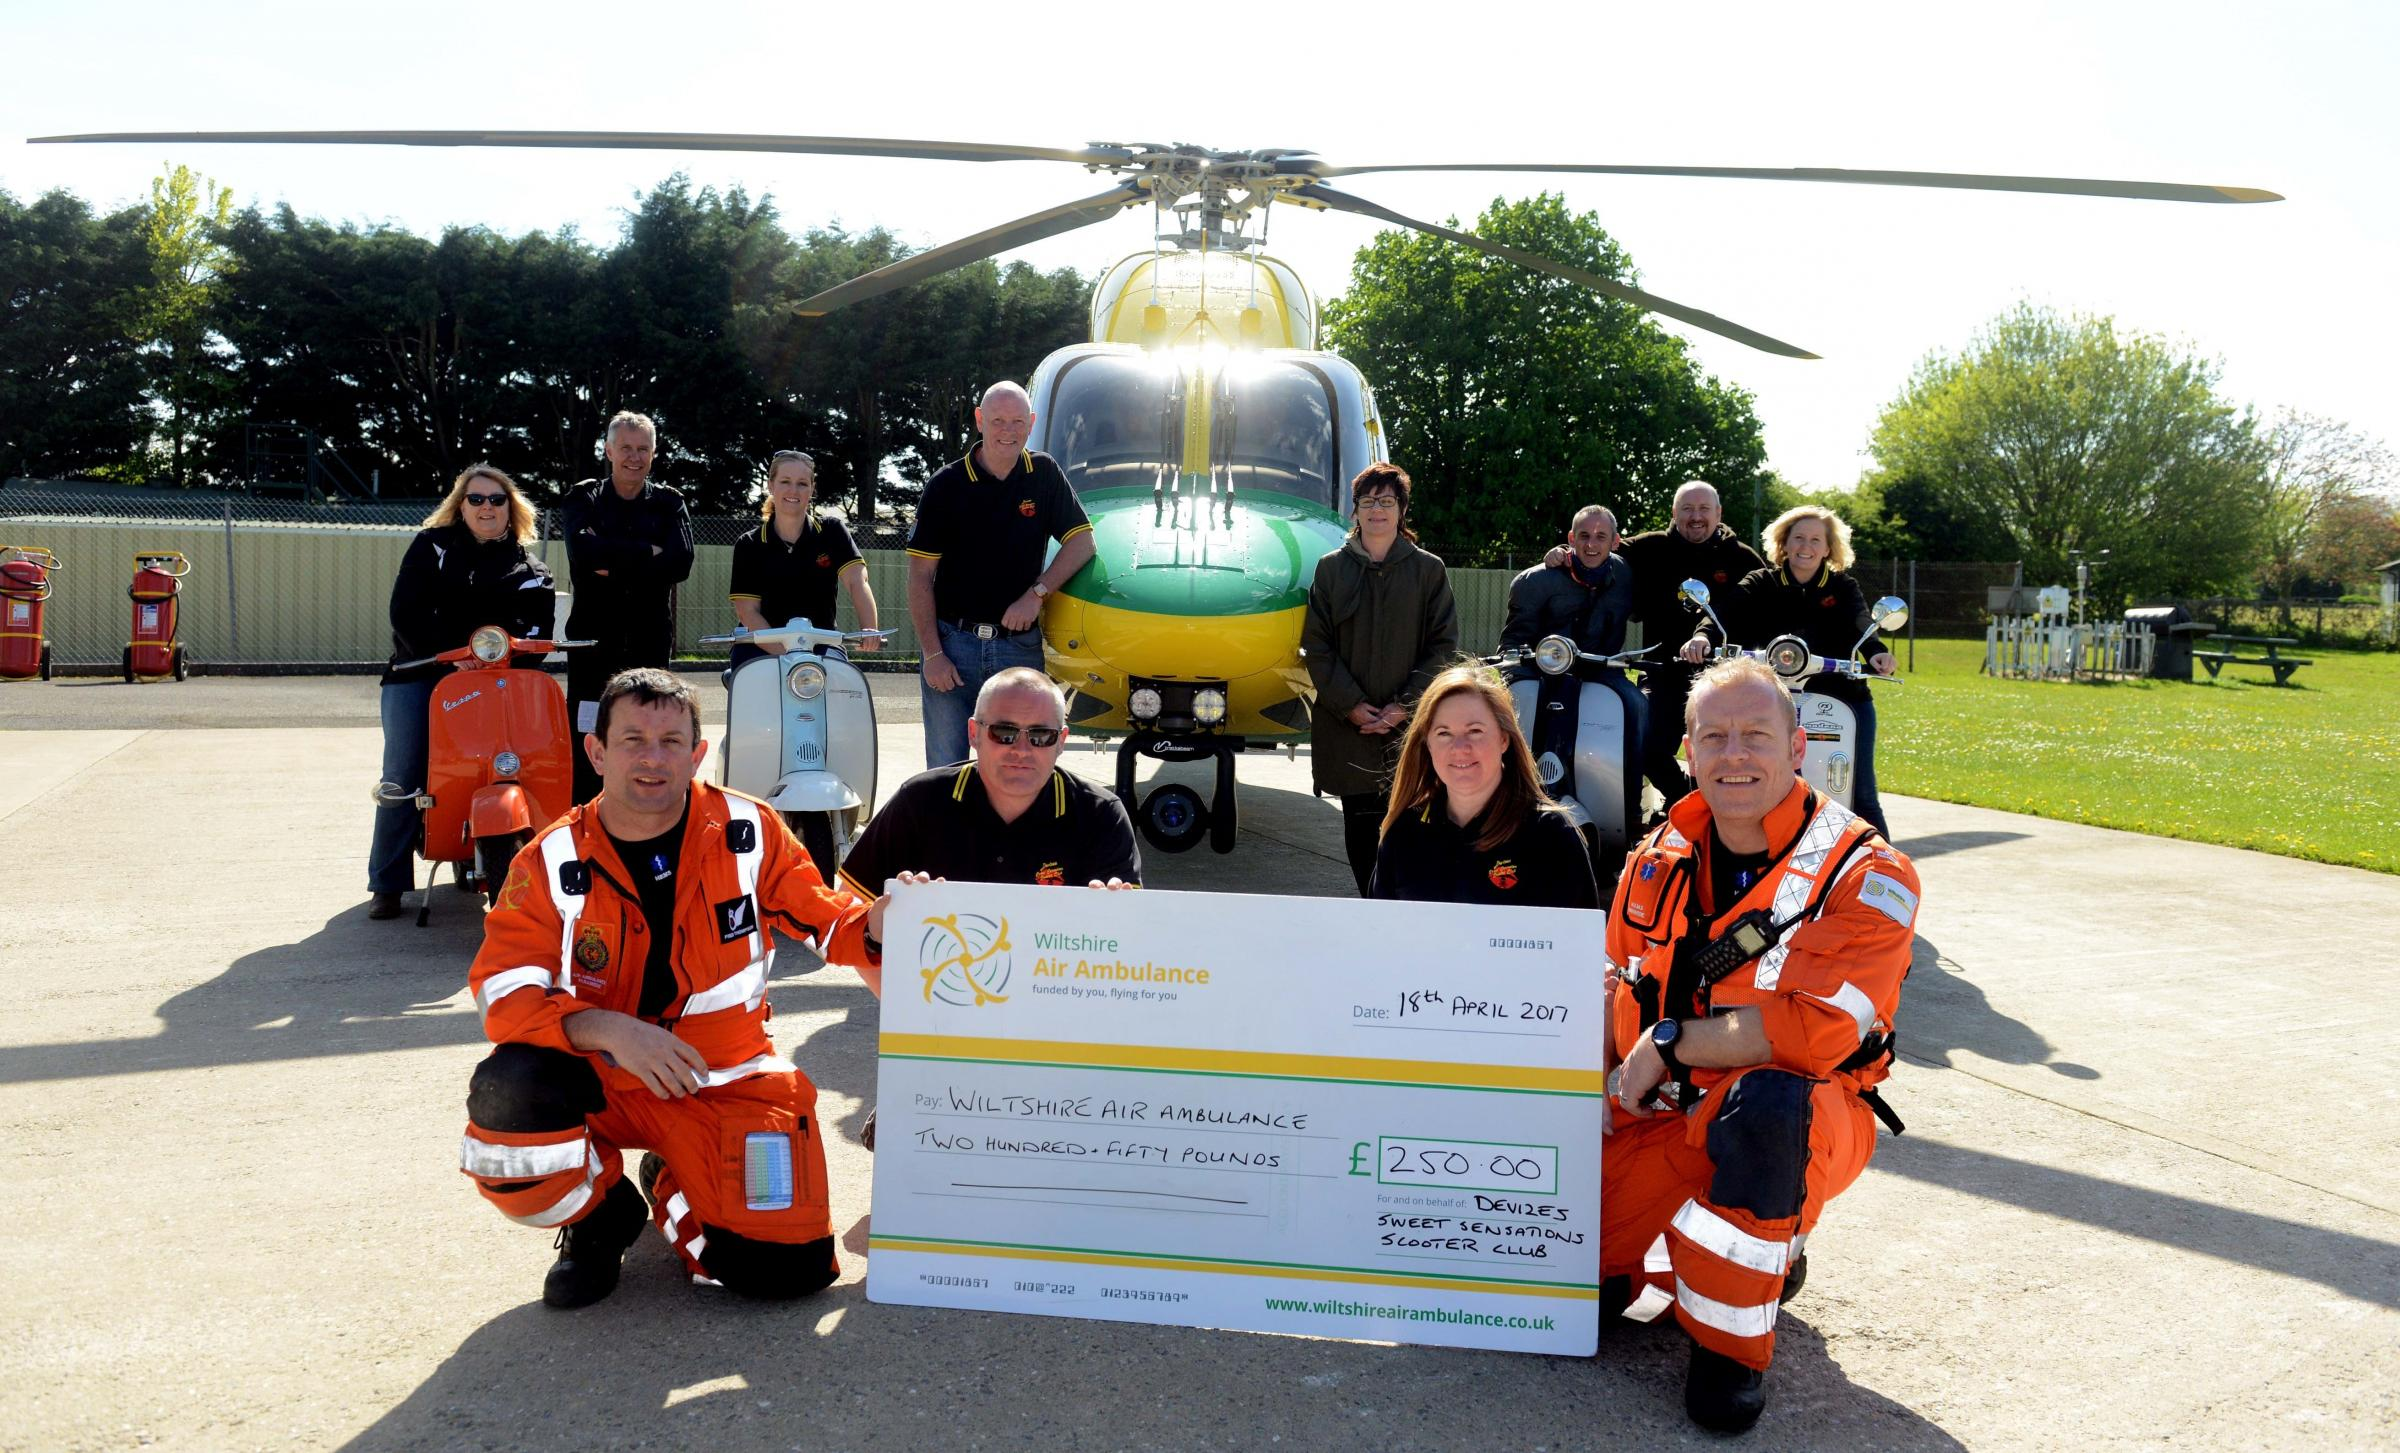 Jay Webb and Sharon Todd present a cheque to Fred Thompson and Keith Mills of Wiltshire Air Ambulance watched by scooter club members. Picture by Siobhan Boyle